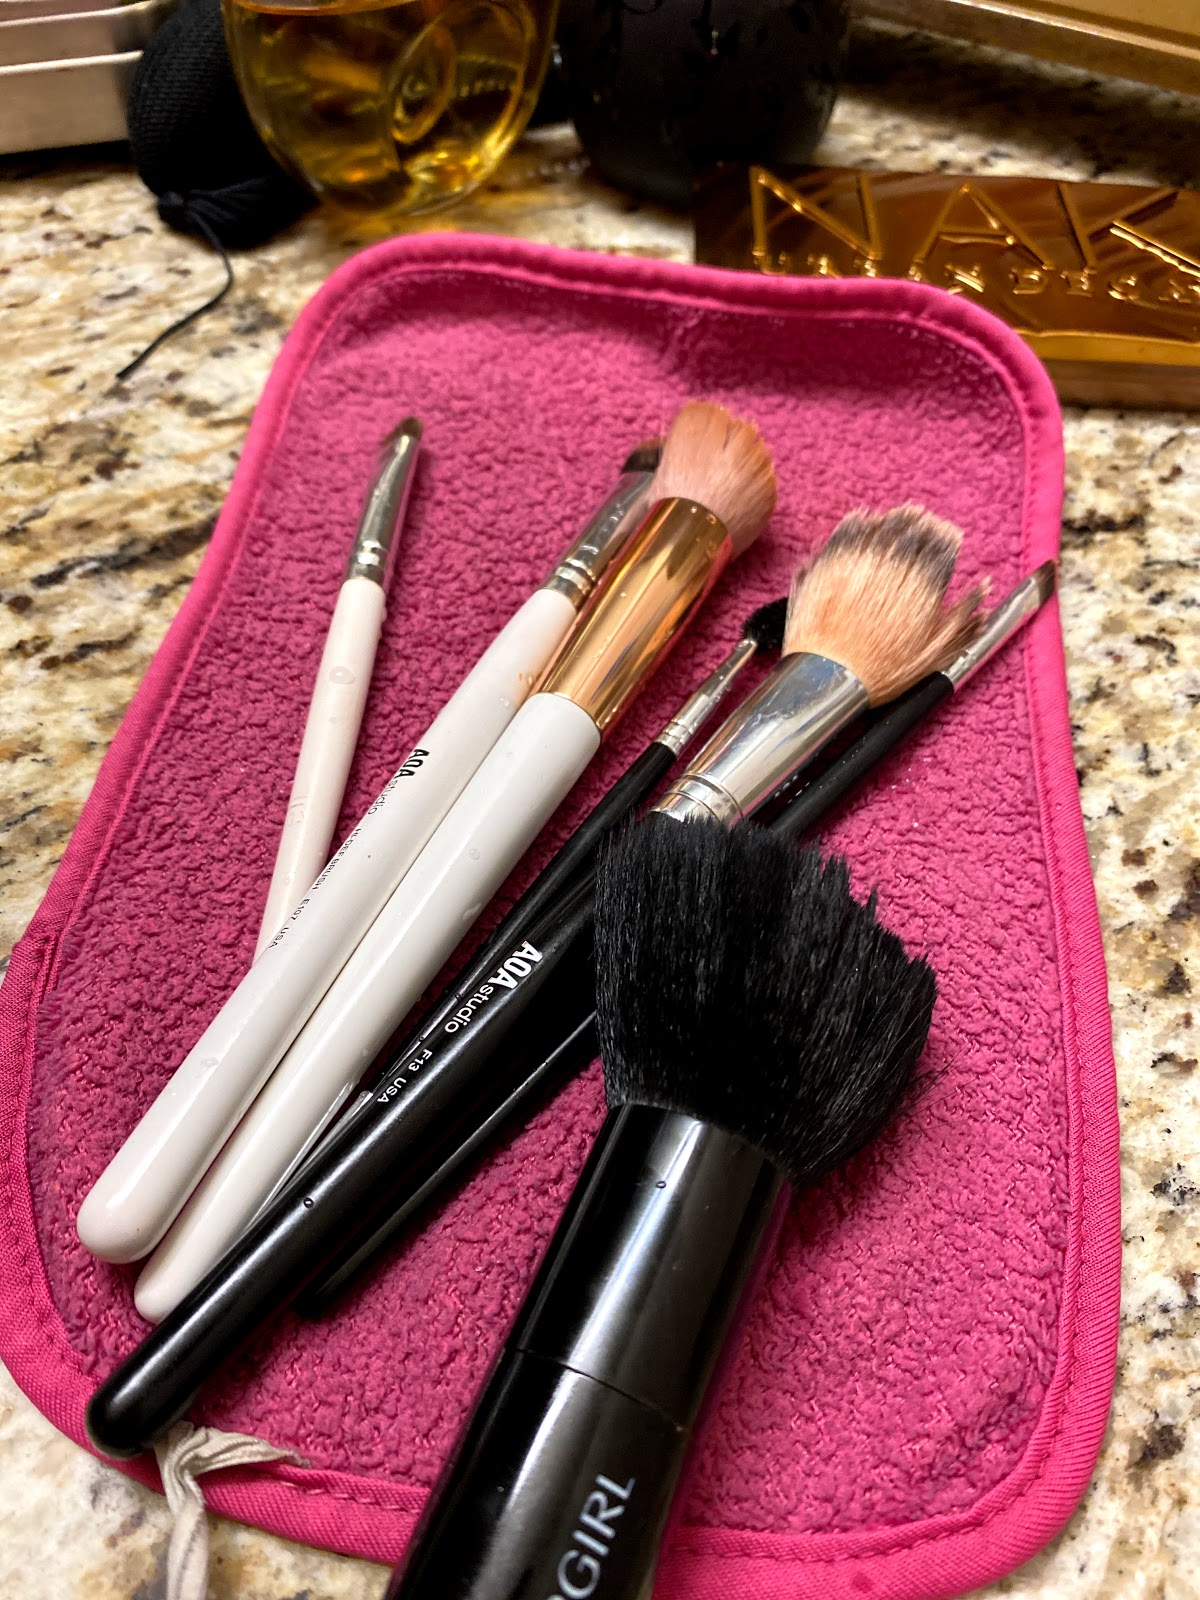 Saying Good-Bye Ain't Easy! Feeling Good washing old make-up brushes